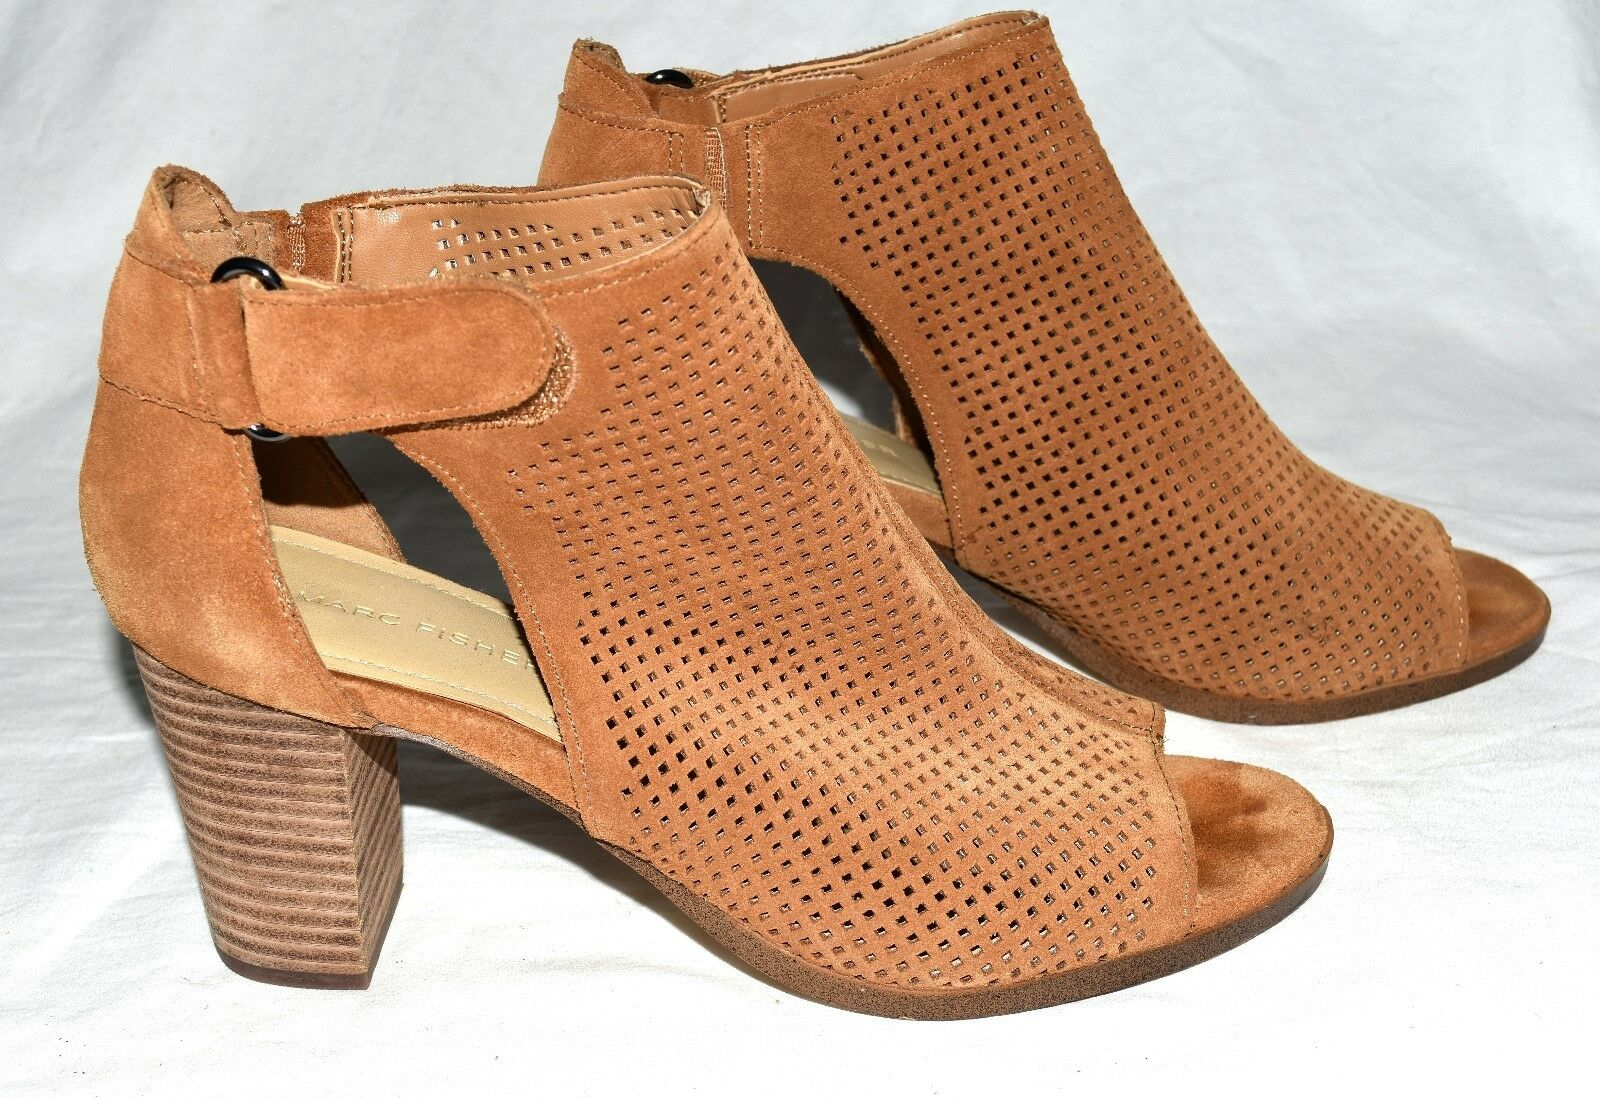 Marc Fisher Demika Perforated Cognac Suede Womens Ankle Strap Heels Size 9 M